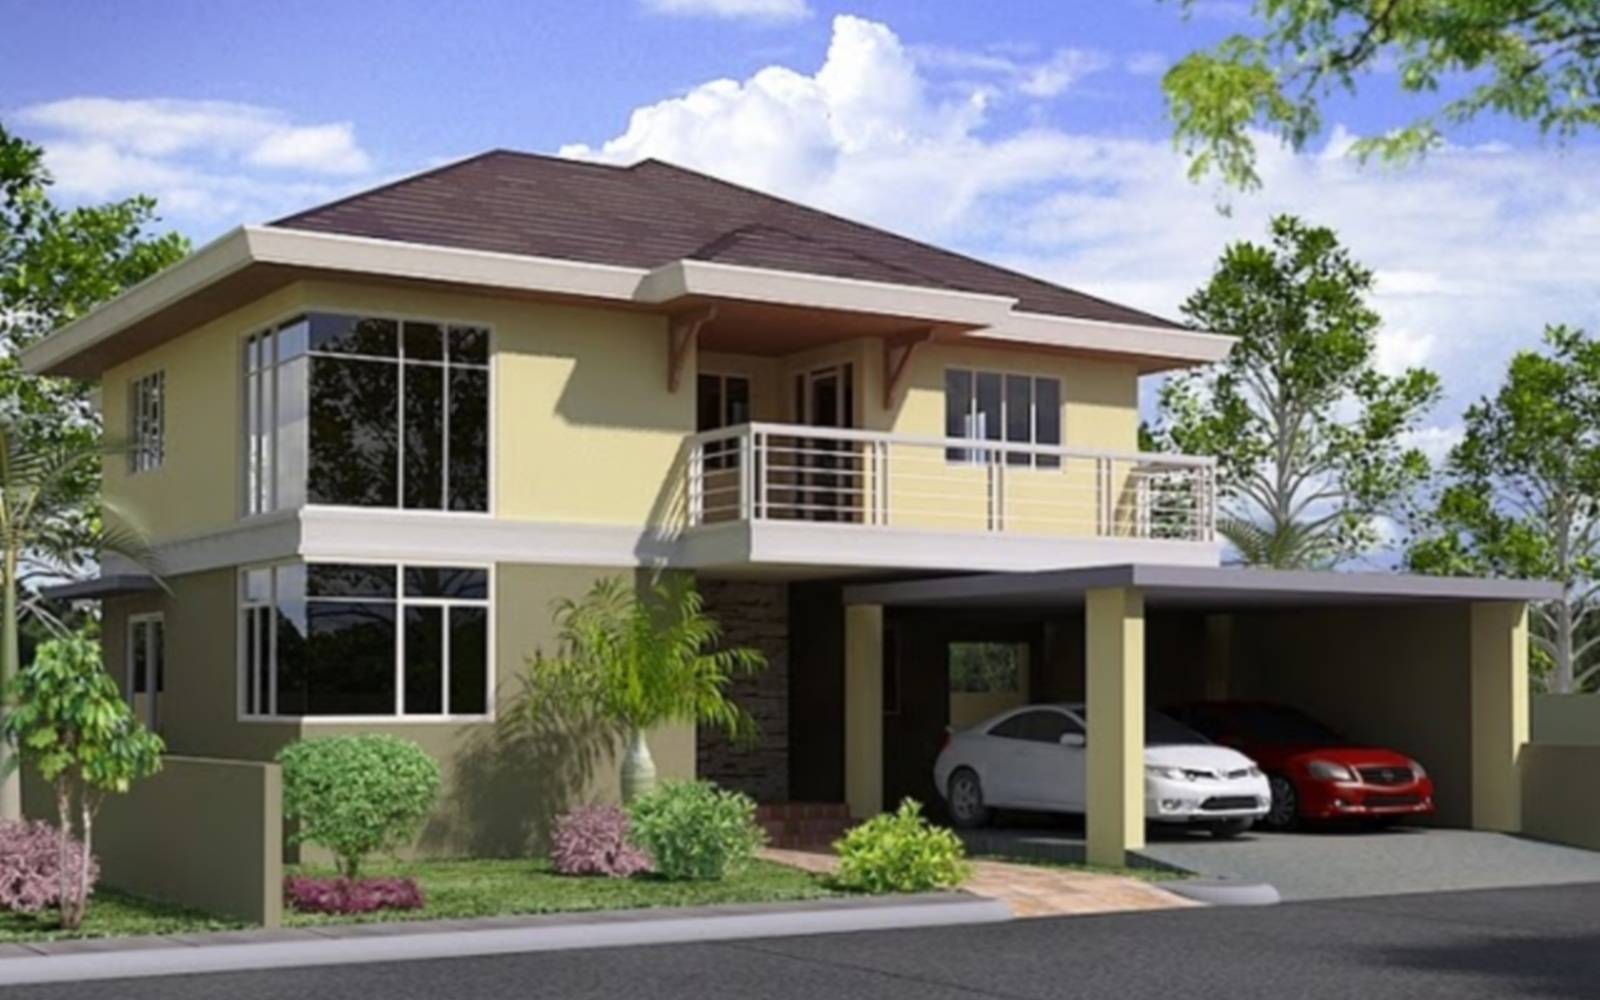 Image two storey house philippines joy studio design for House plan design philippines